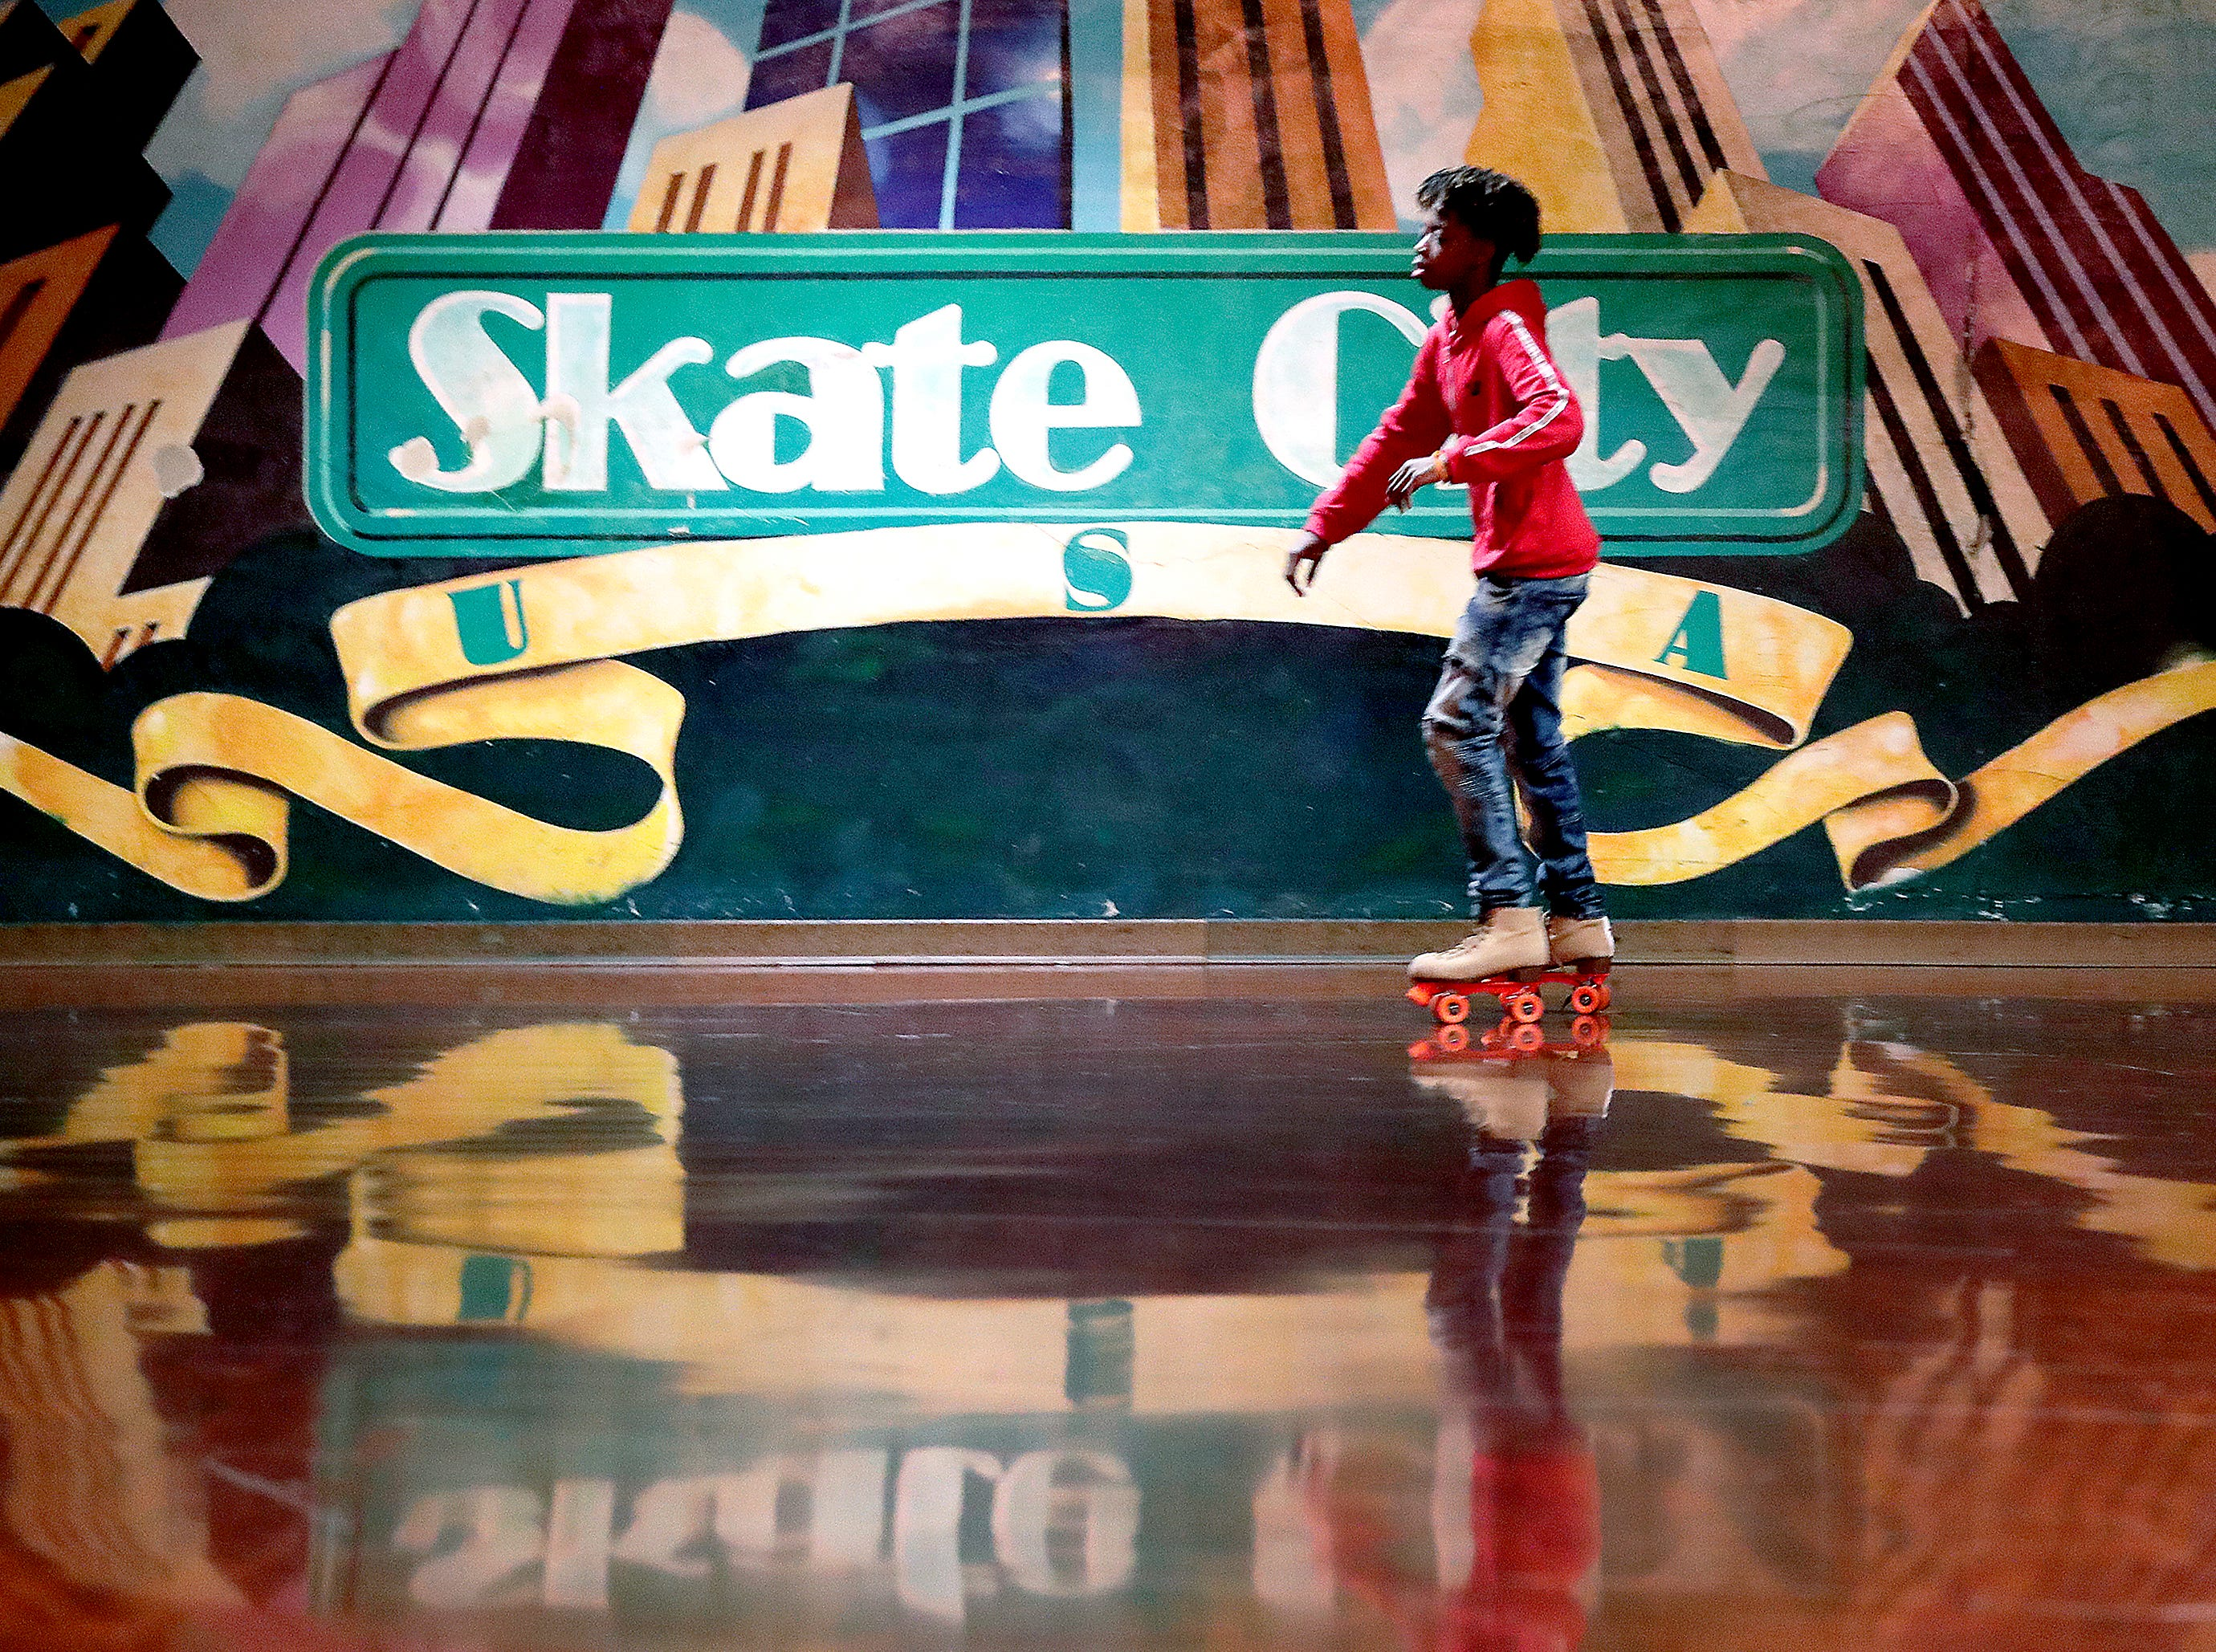 Skate City roller skating rink on Friday, February 2, 2019, in Kimberly, Wis.